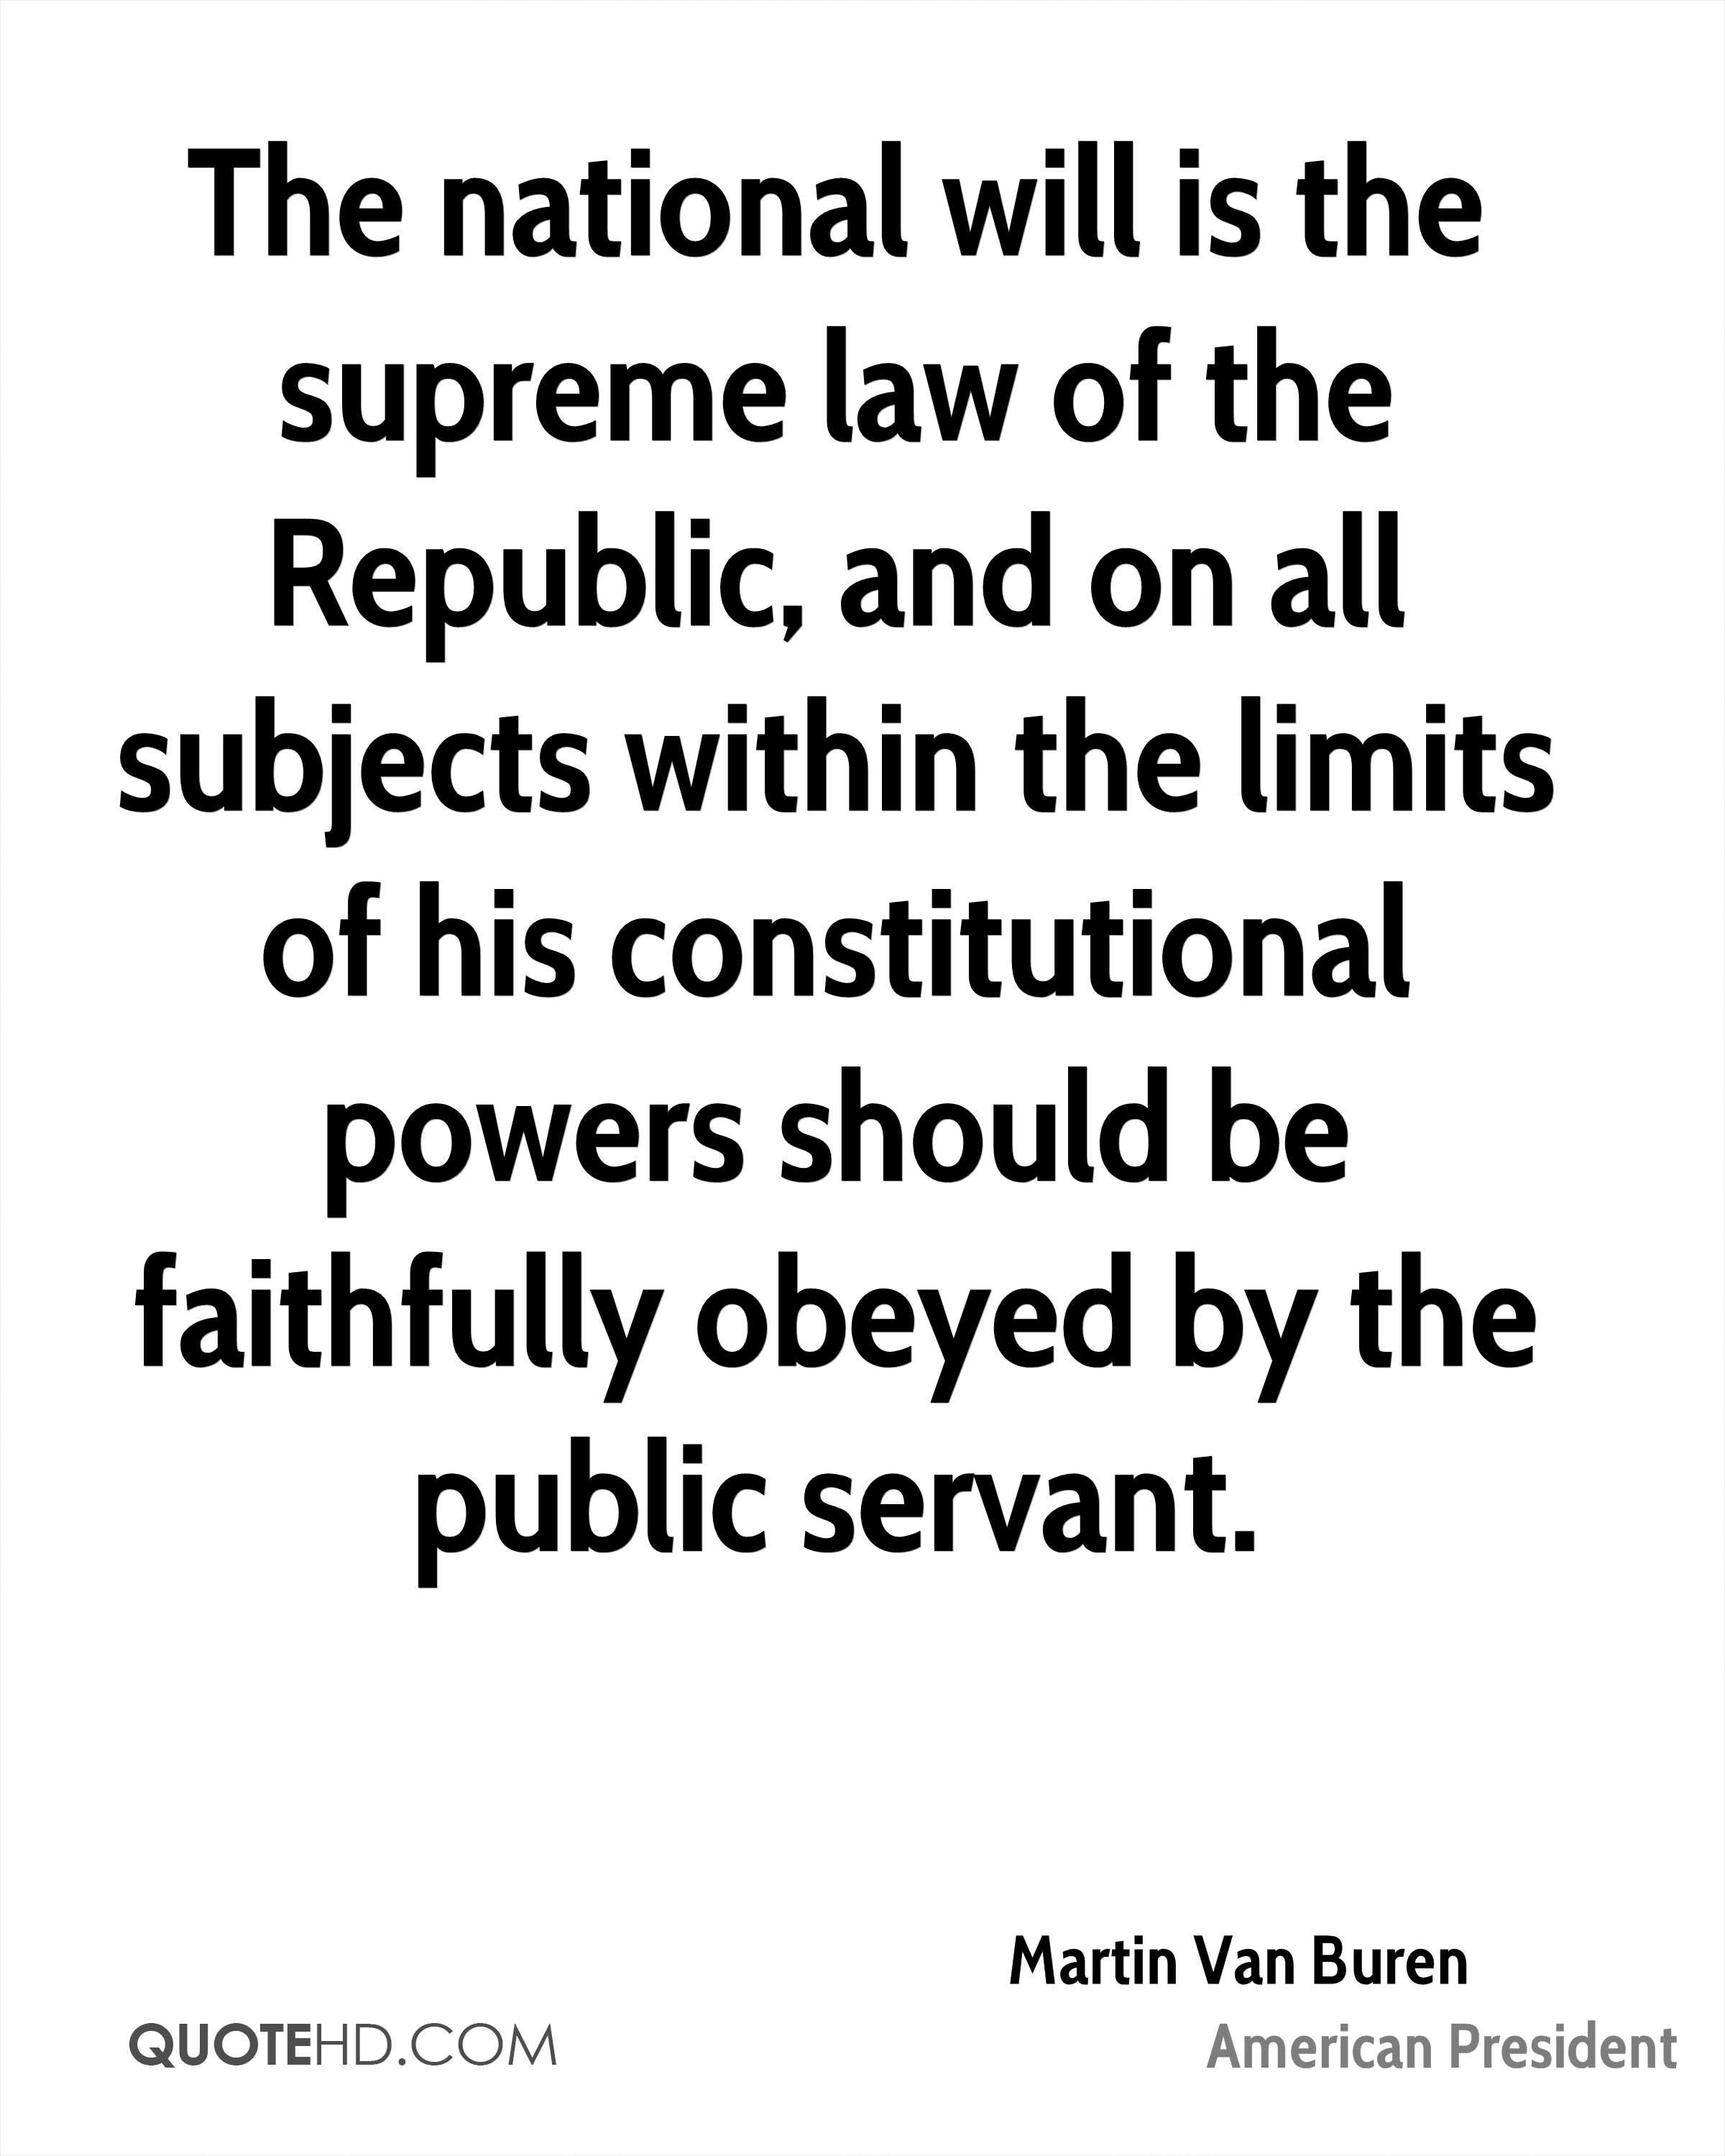 The national will is the supreme law of the Republic, and on all subjects within the limits of his constitutional powers should be faithfully obeyed by the public servant.